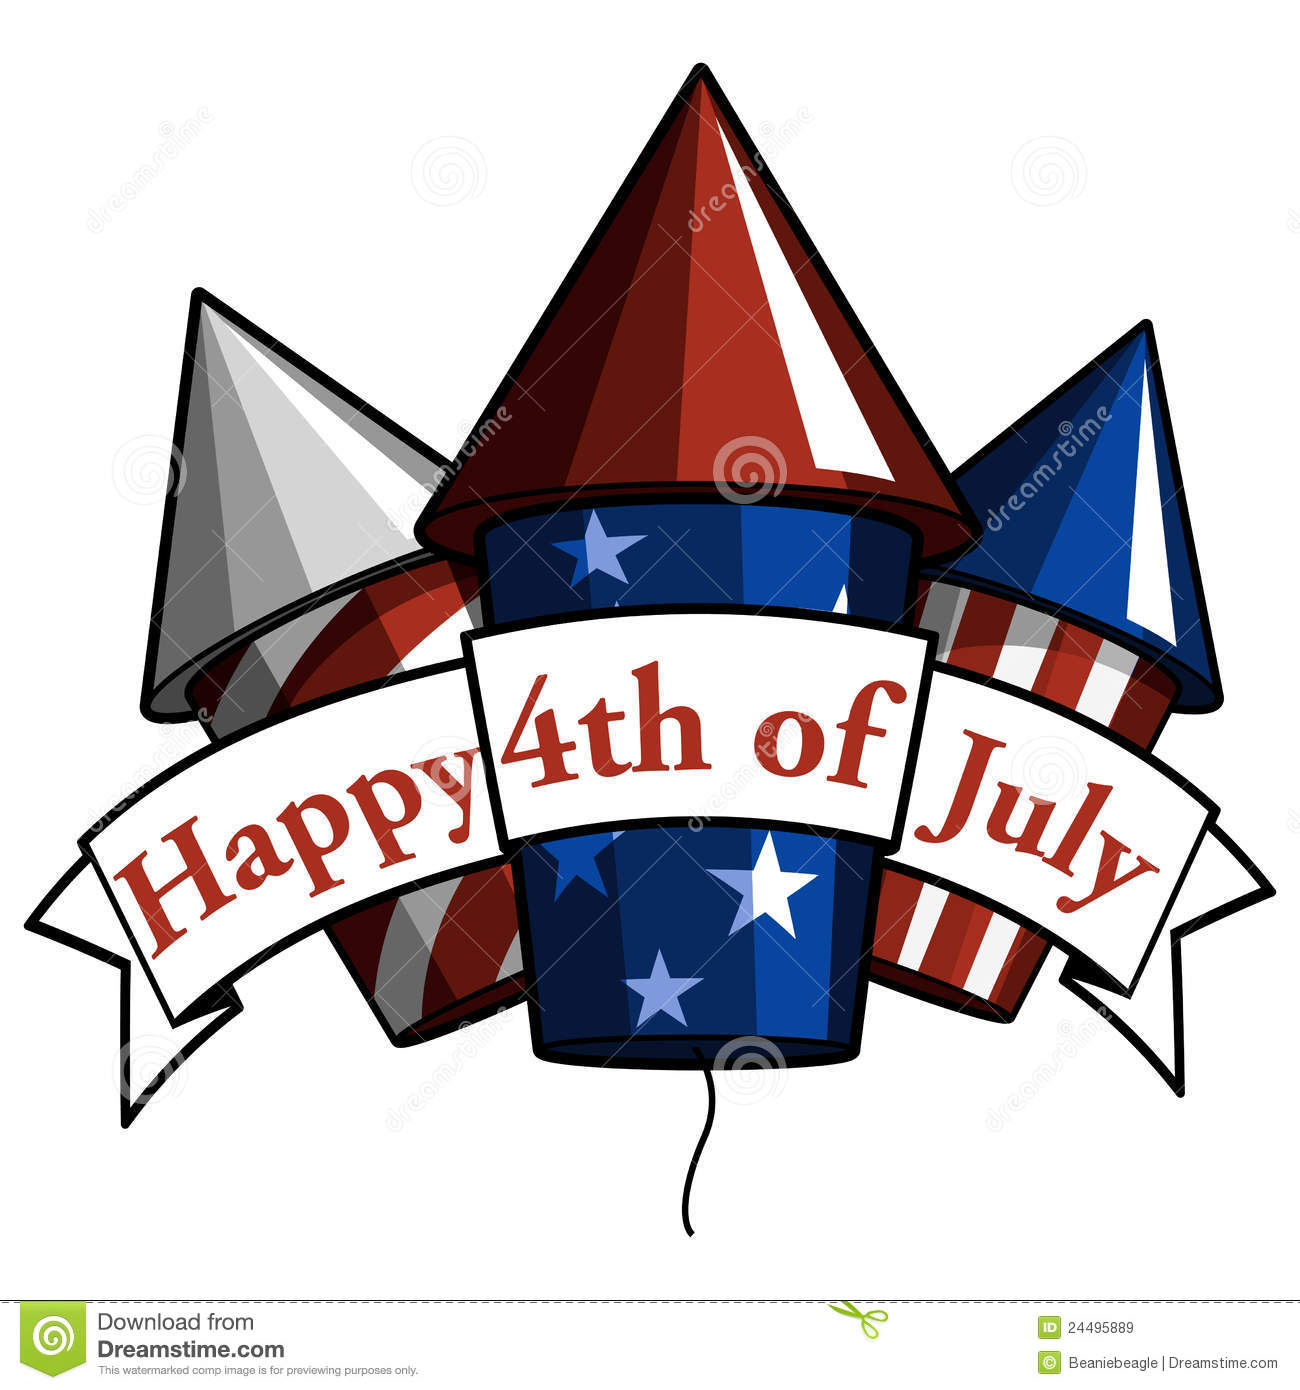 Clipart july 4th - ClipartFest